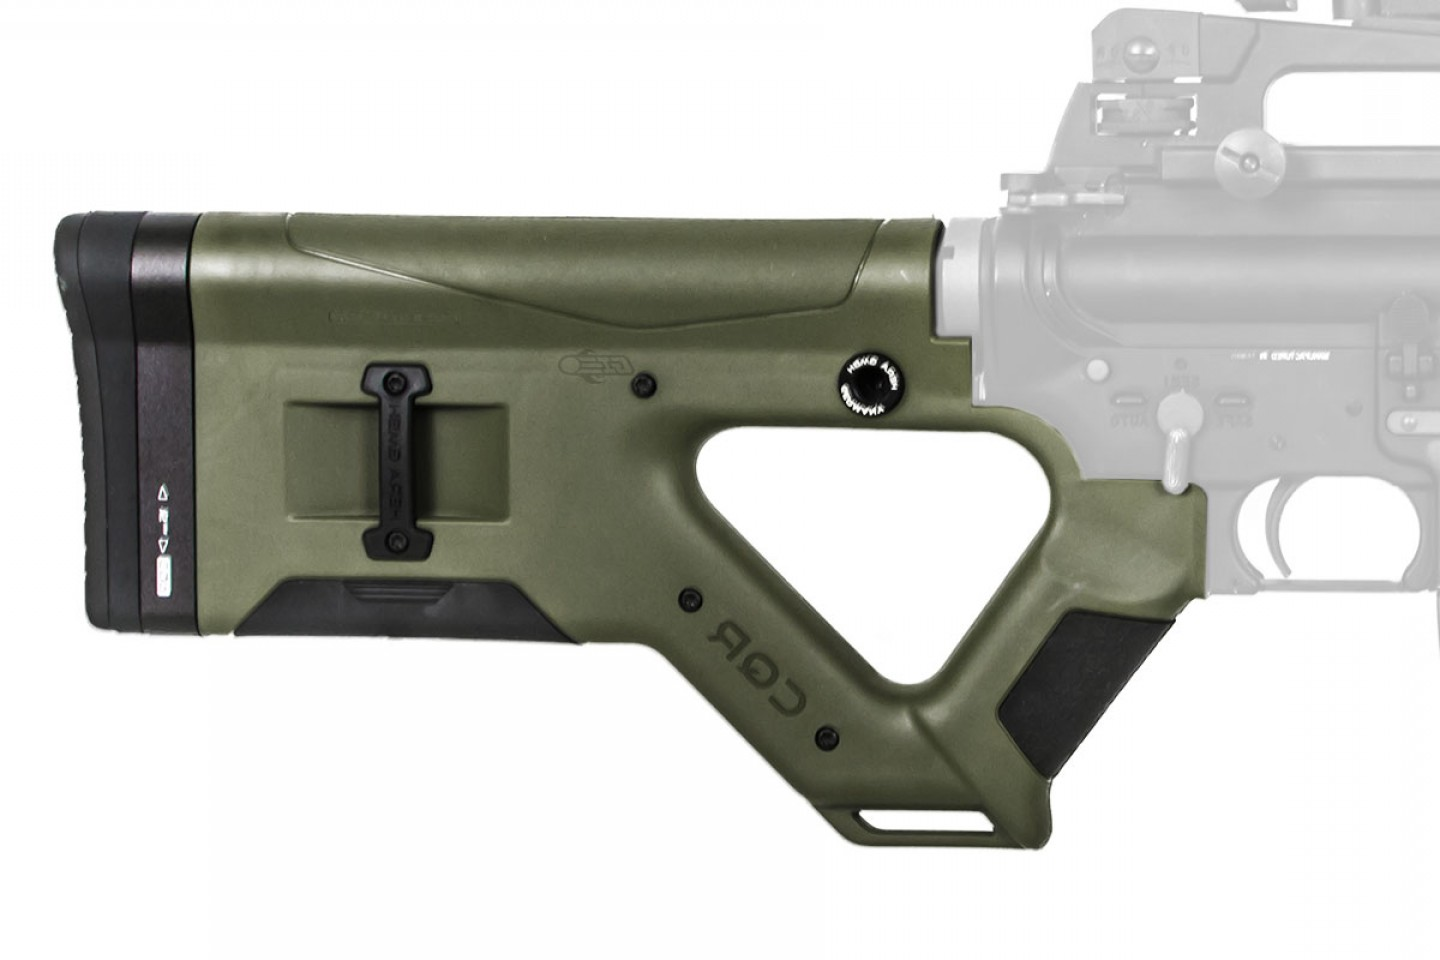 Kriss Vector AR-15 Stock Adapter: Hera Arms Cqr Ar M Featureless Stock Od Green